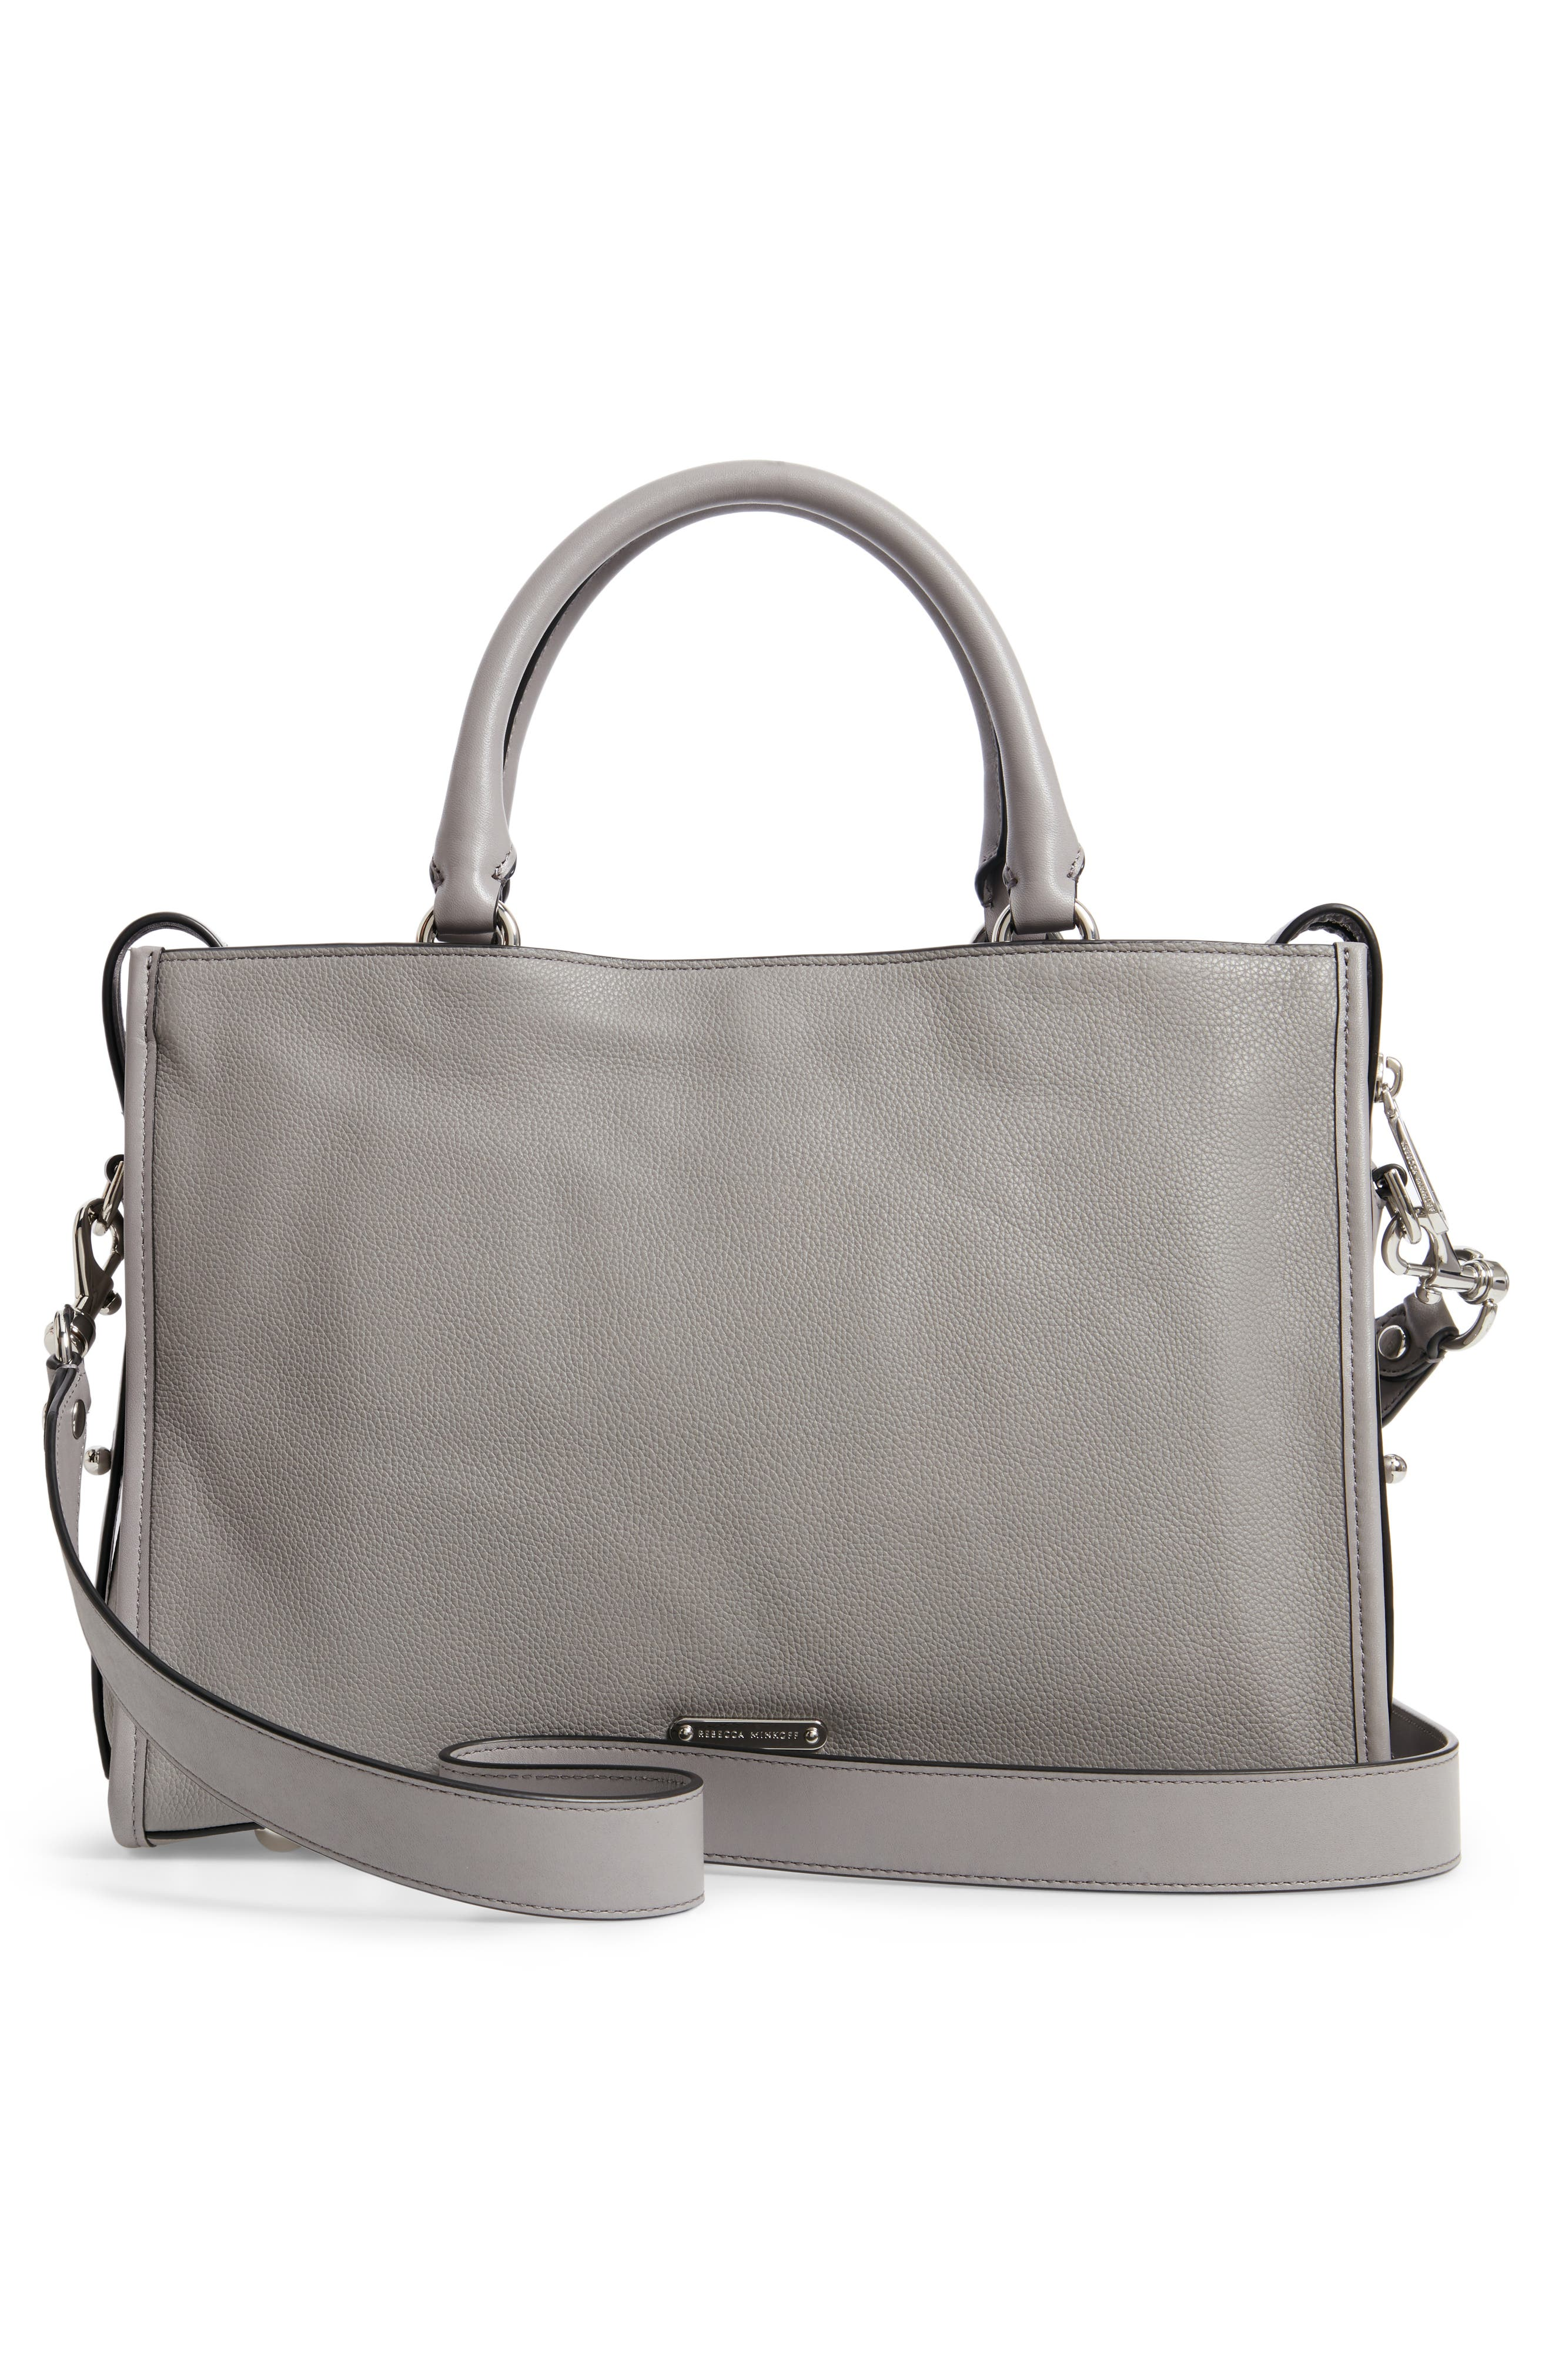 REBECCA MINKOFF,                             Bedford Zip Leather Satchel,                             Alternate thumbnail 3, color,                             GREY